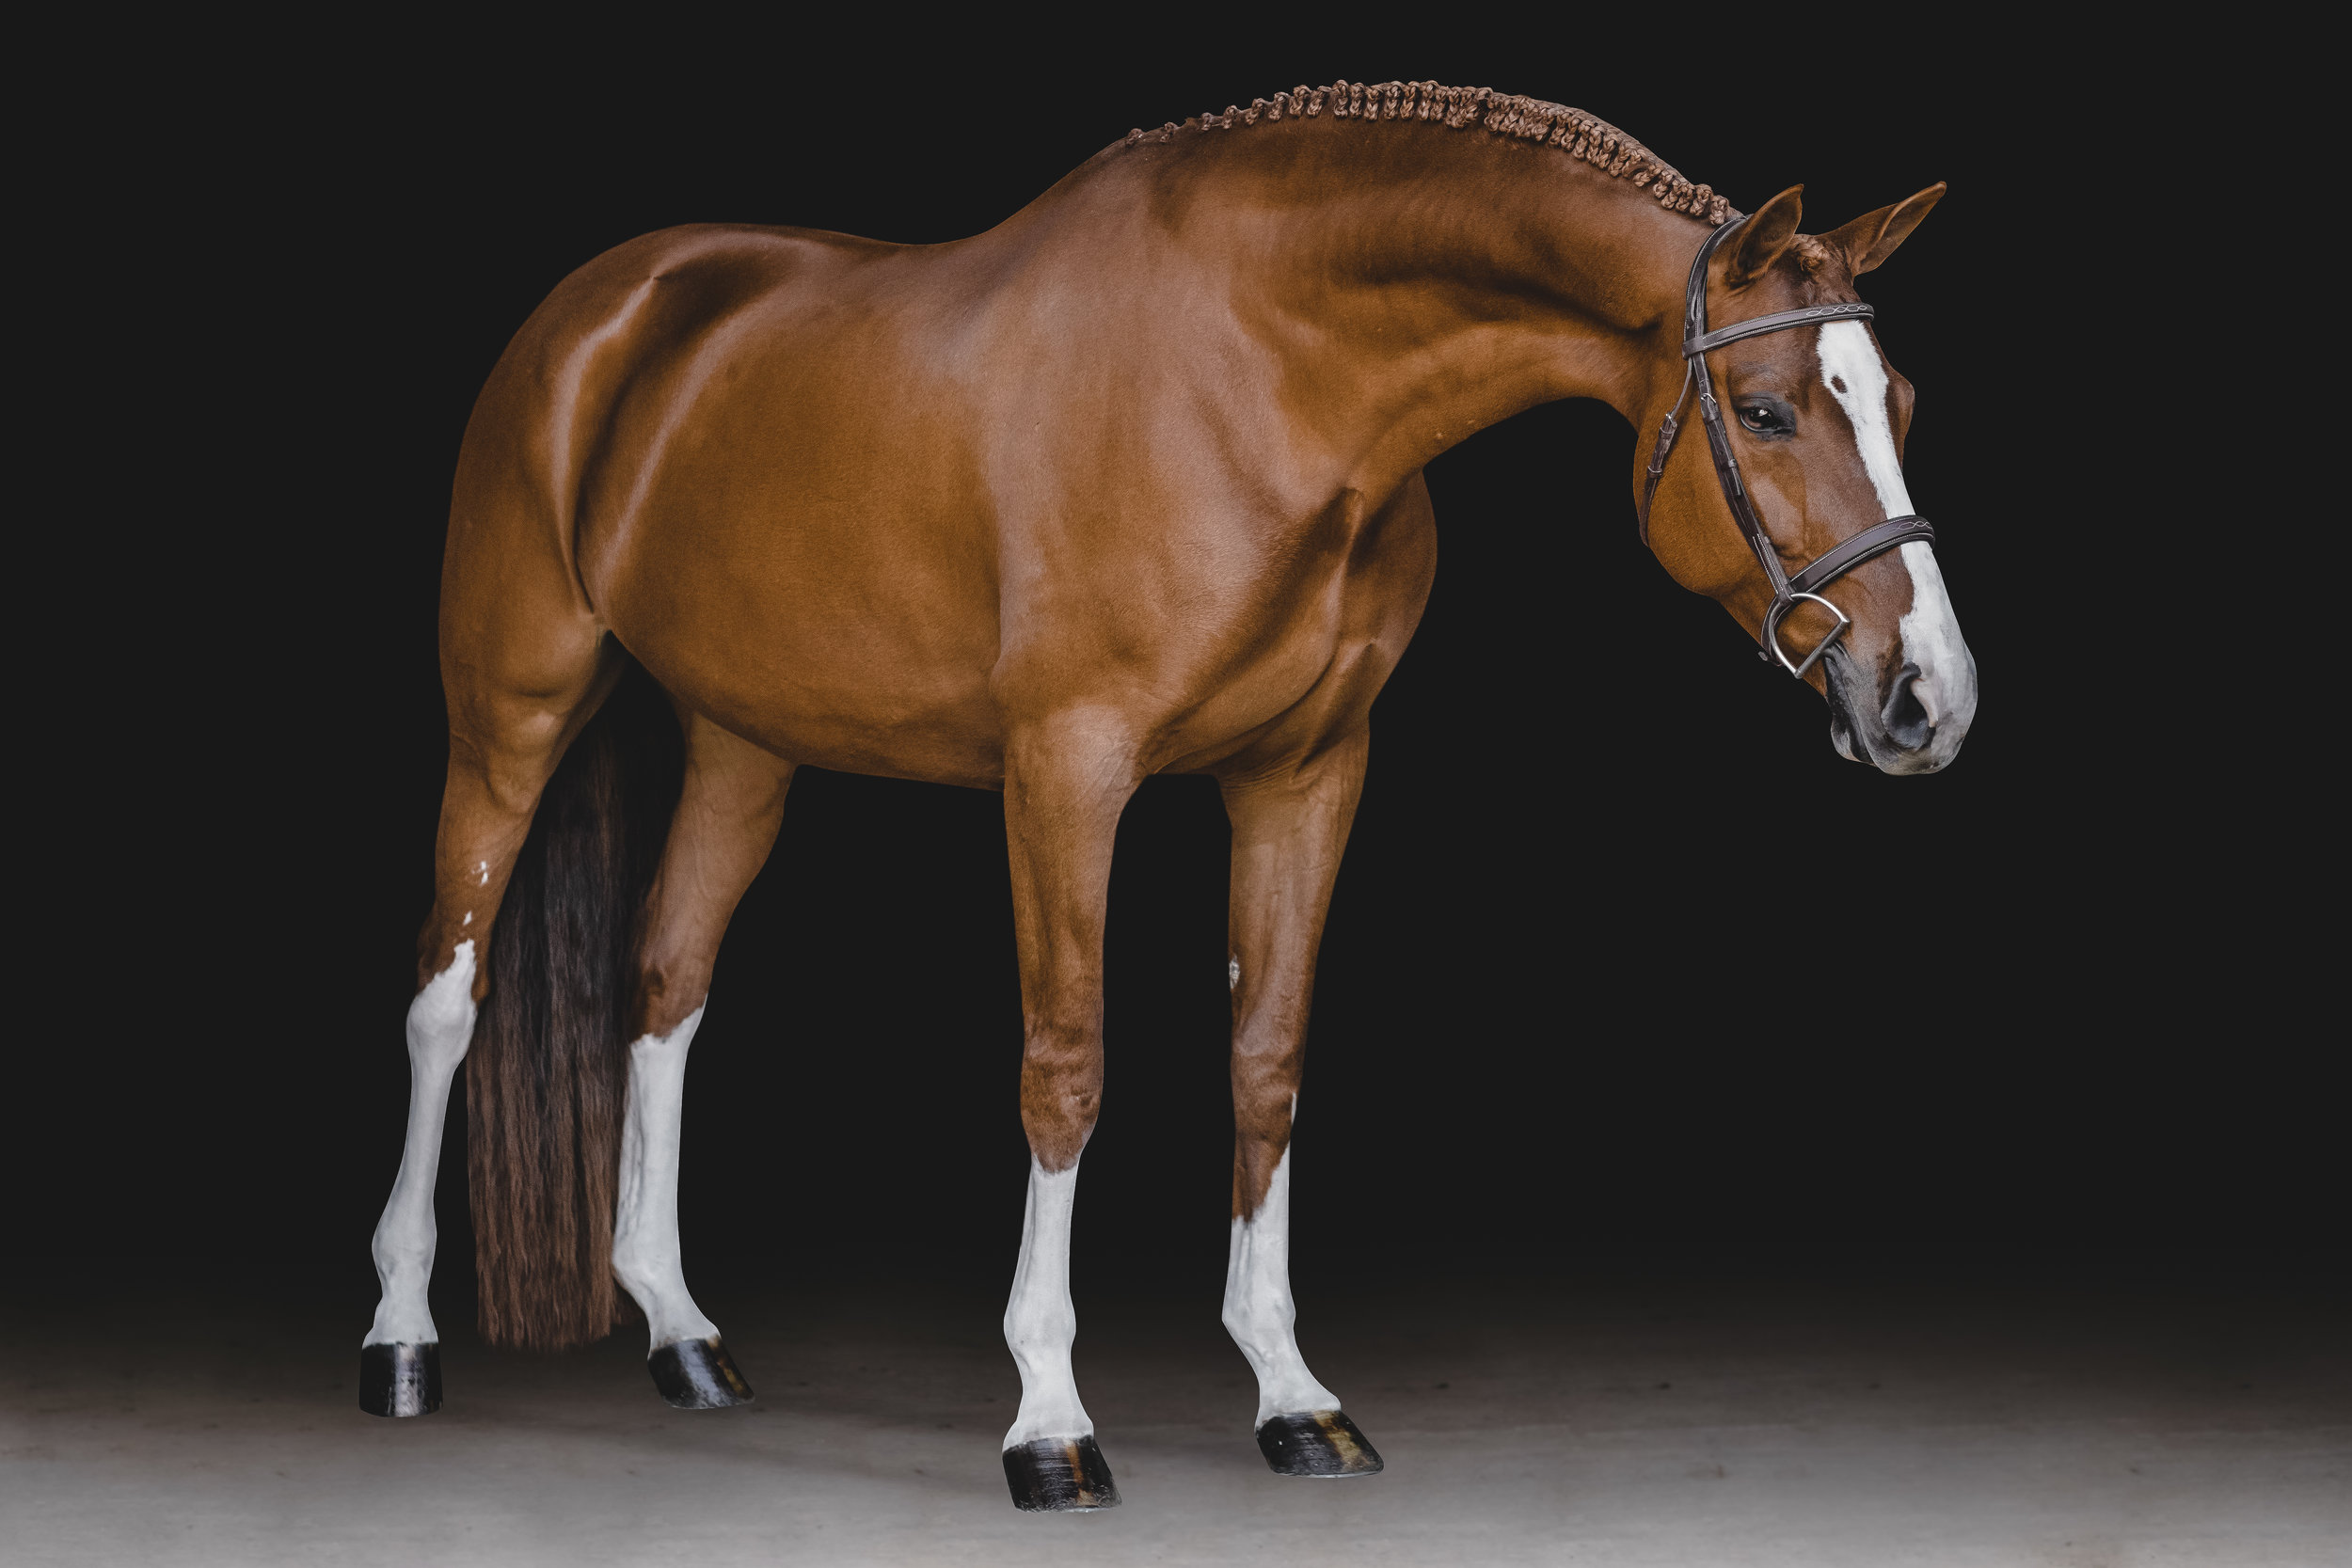 CLEAN CRISP CLASSIC - Bring your horse into a studio without the hassle and expensive price tag. Black Backgrounds are not only a gorgeous portrayal of your horse's beauty but a sleek and stylish way to add your equine companion to your home decor. These portrait sessions include multiple poses ranging from headshots to full bodies, to capture your horse's best features and personality.